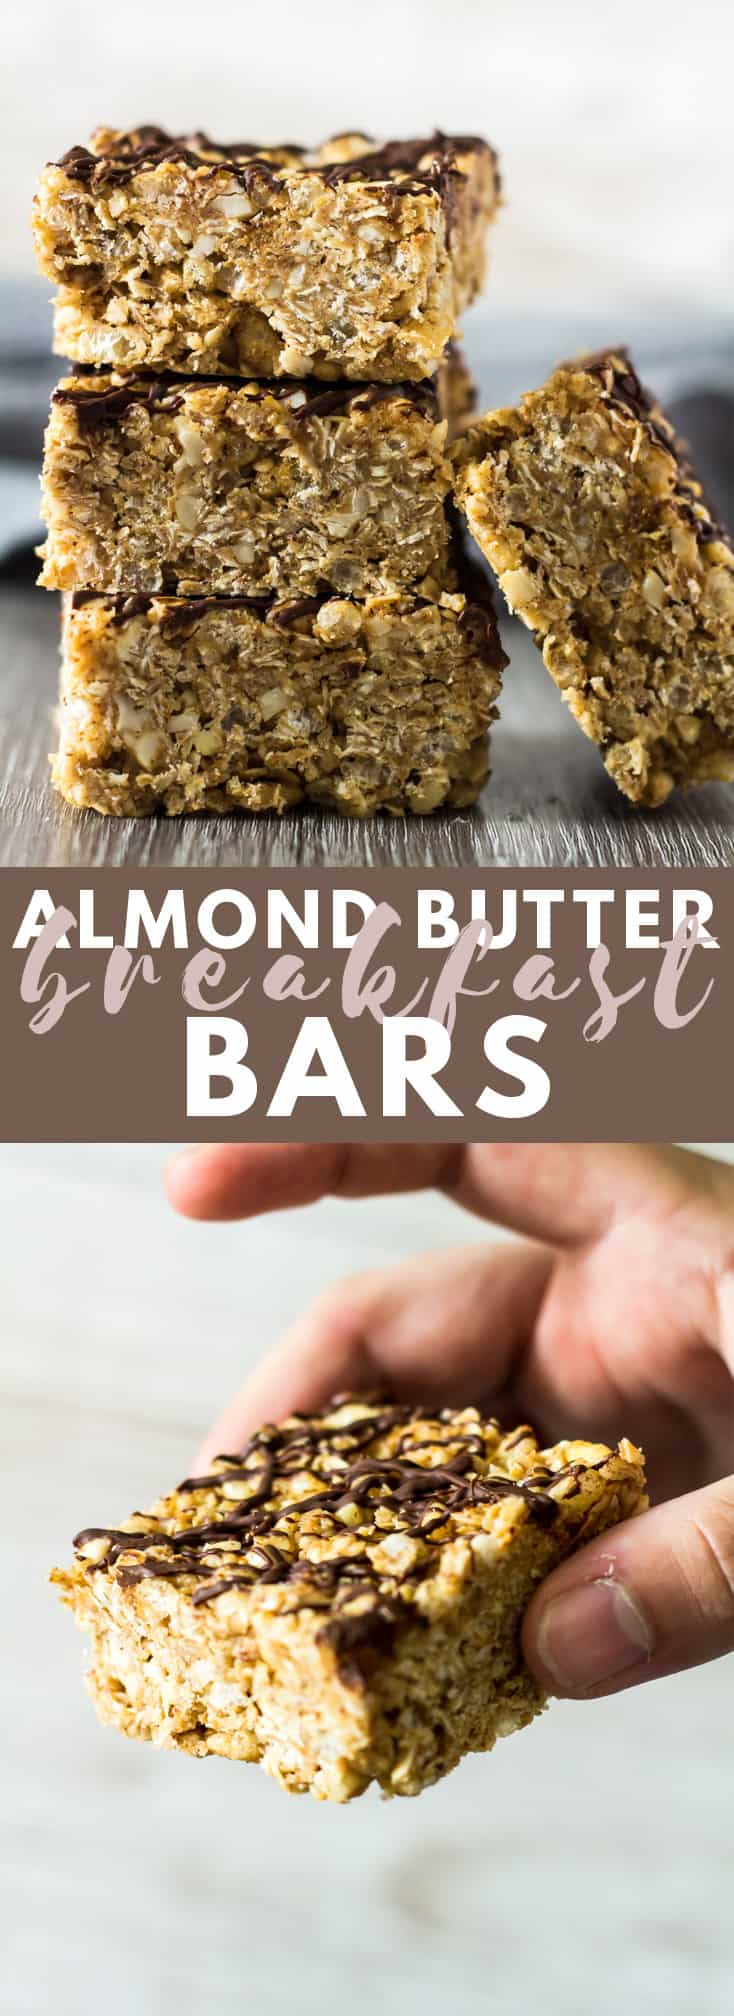 No-Bake Almond Butter Breakfast Bars - Deliciously thick and chewy no-bake granola bars that are loaded with almond butter flavour, and drizzled with dark chocolate!